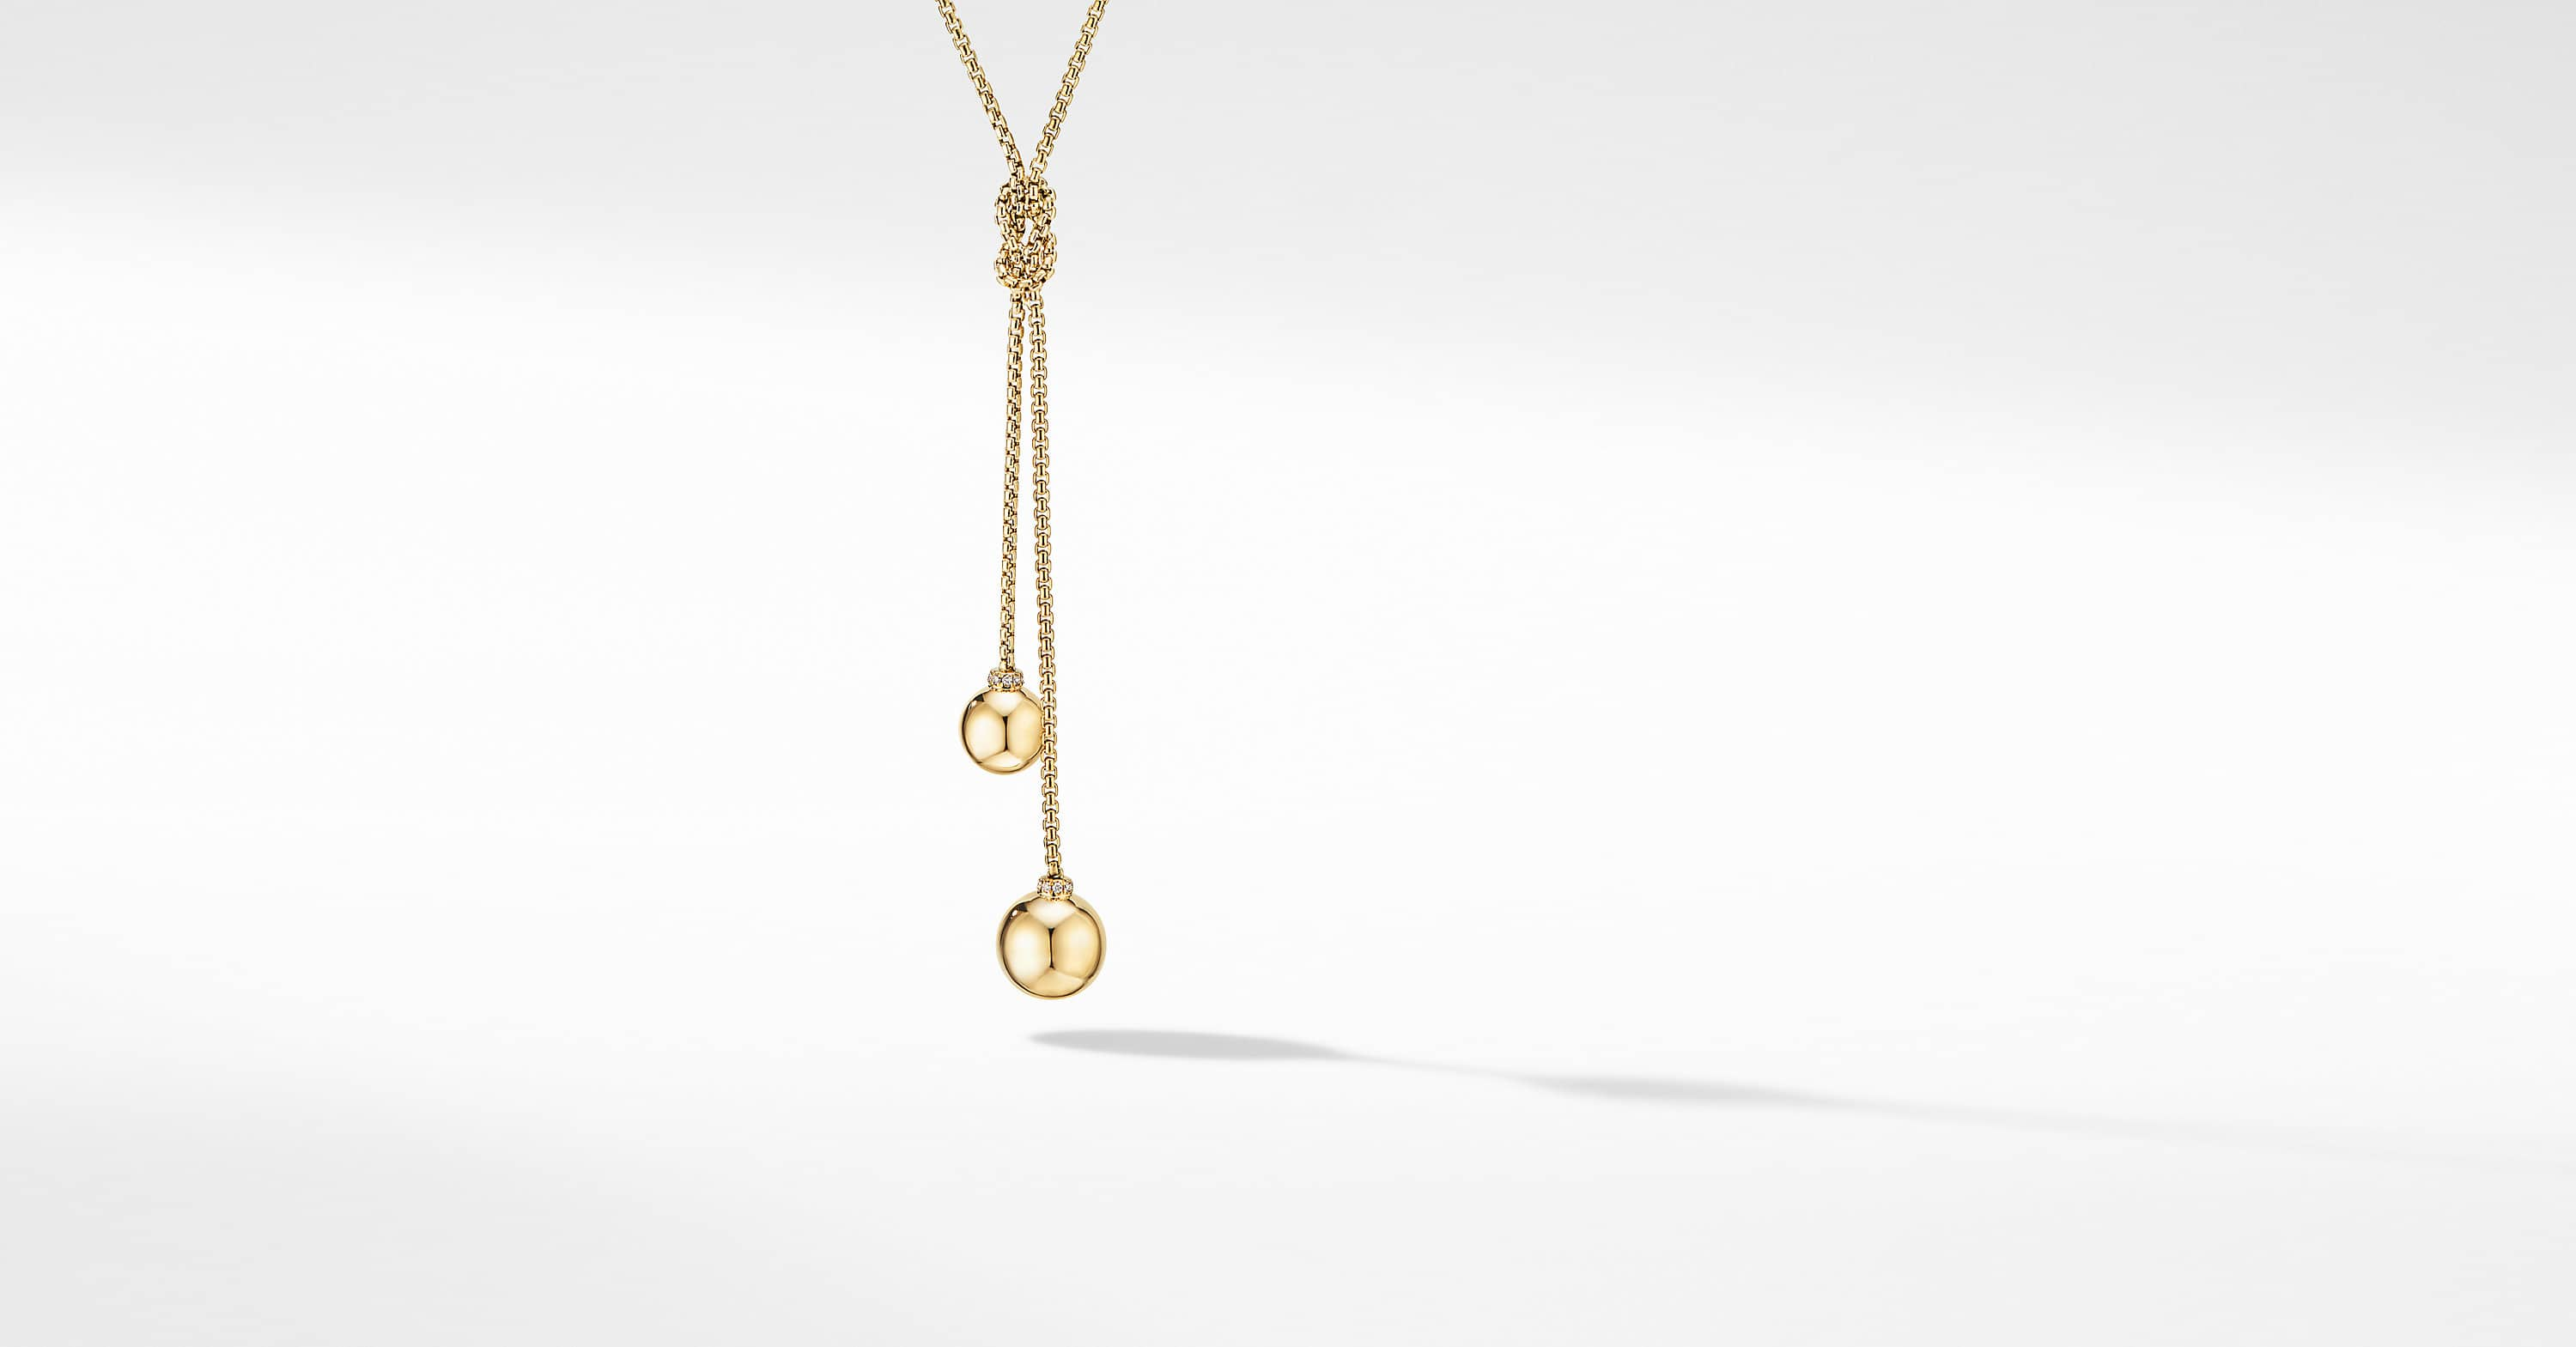 Solari Y Necklace in 18K Yellow Gold with Pavé